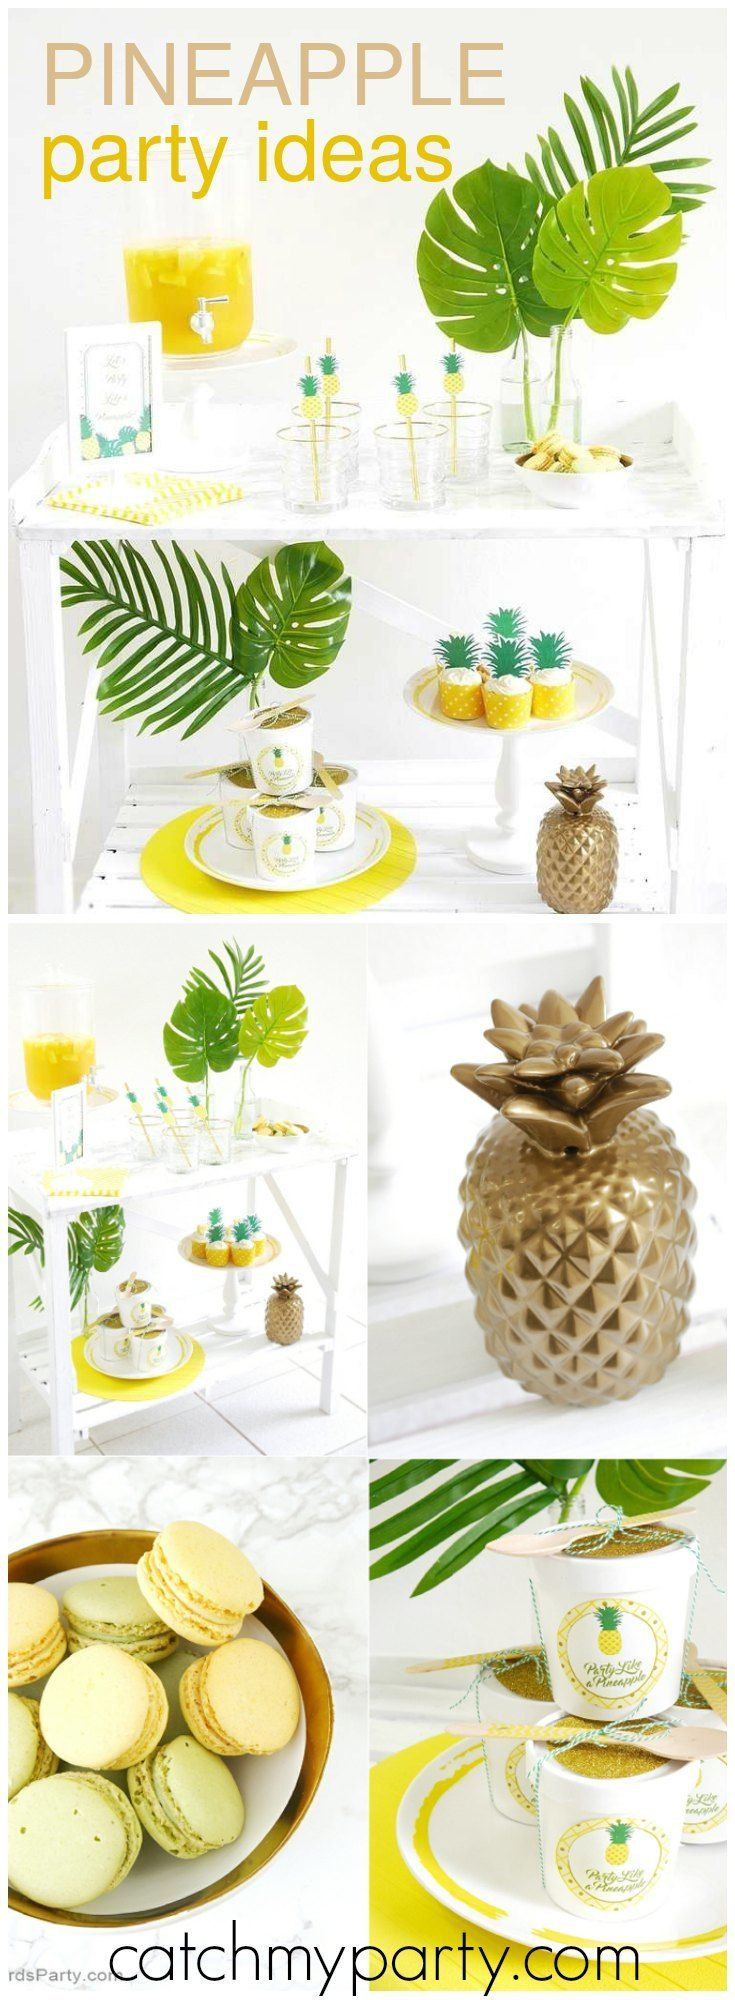 Party like a pineapple is the fun theme of this modern party! See more party ideas at Catchmyparty.com!